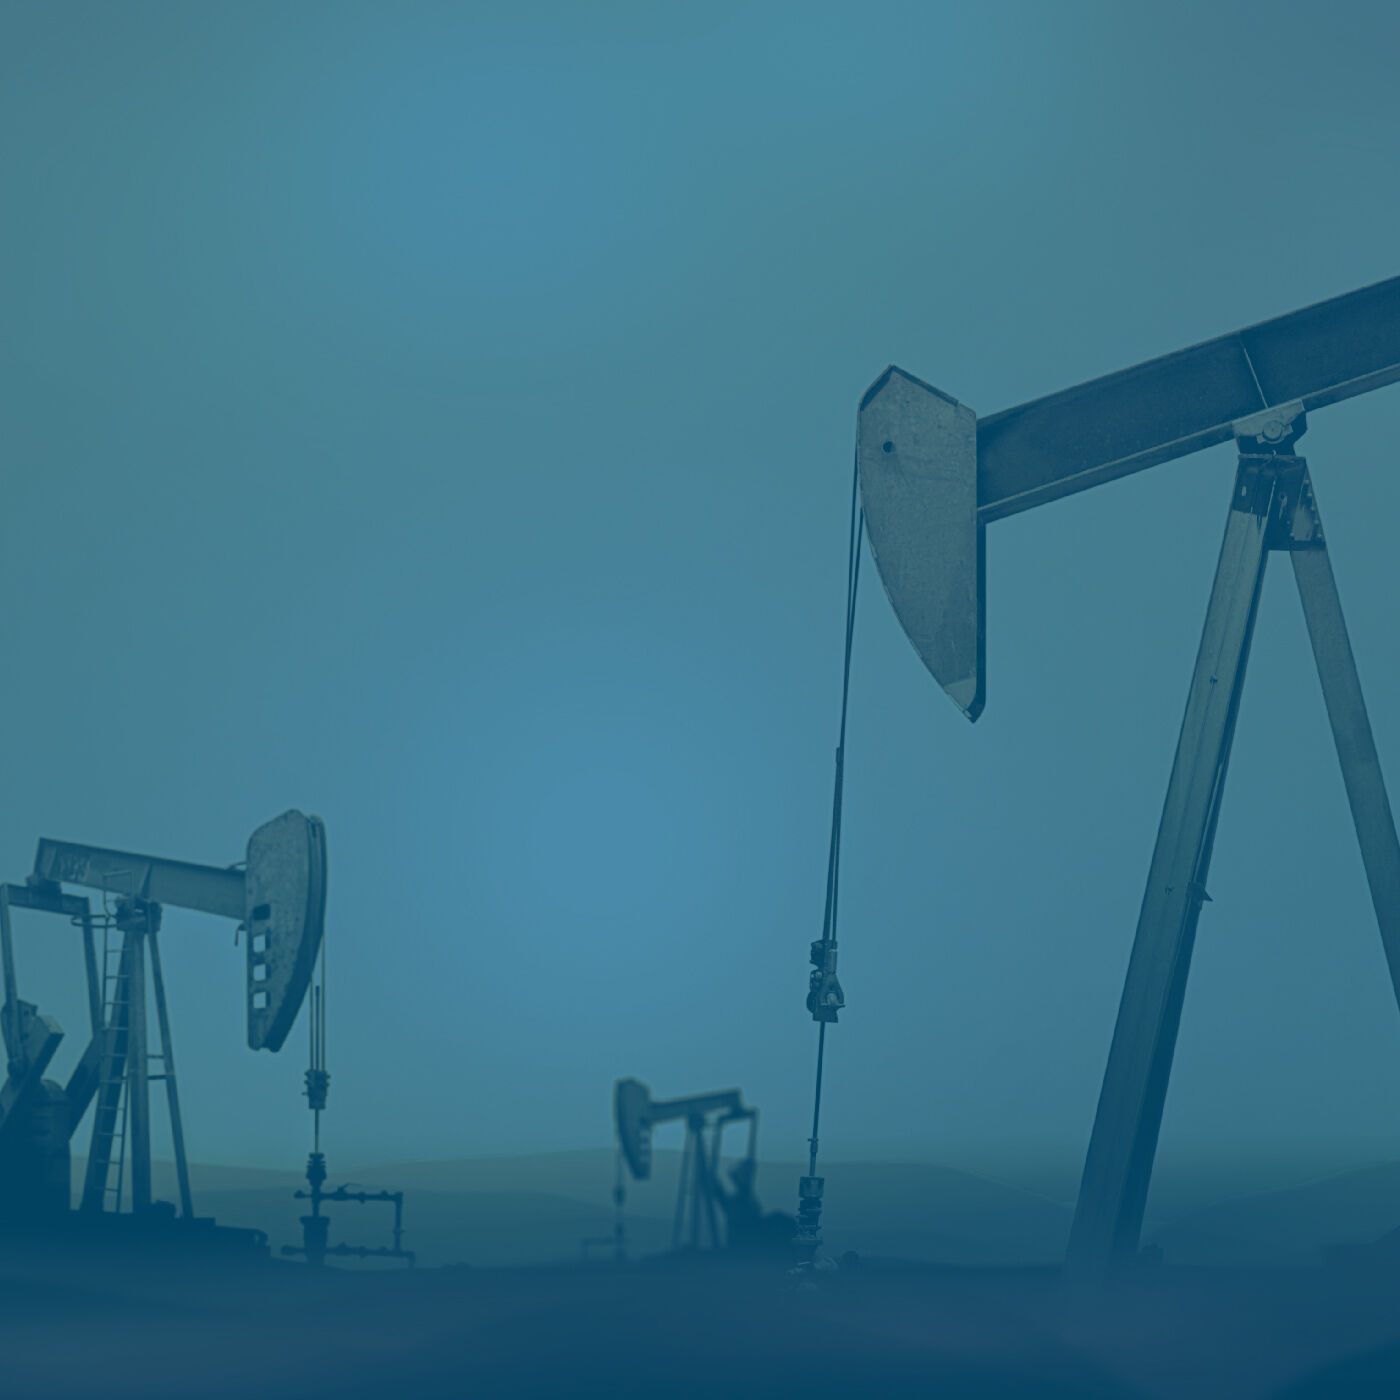 The Perfect Storm: The Impact of COVID-19 and Oil Price War on the Energy Industry